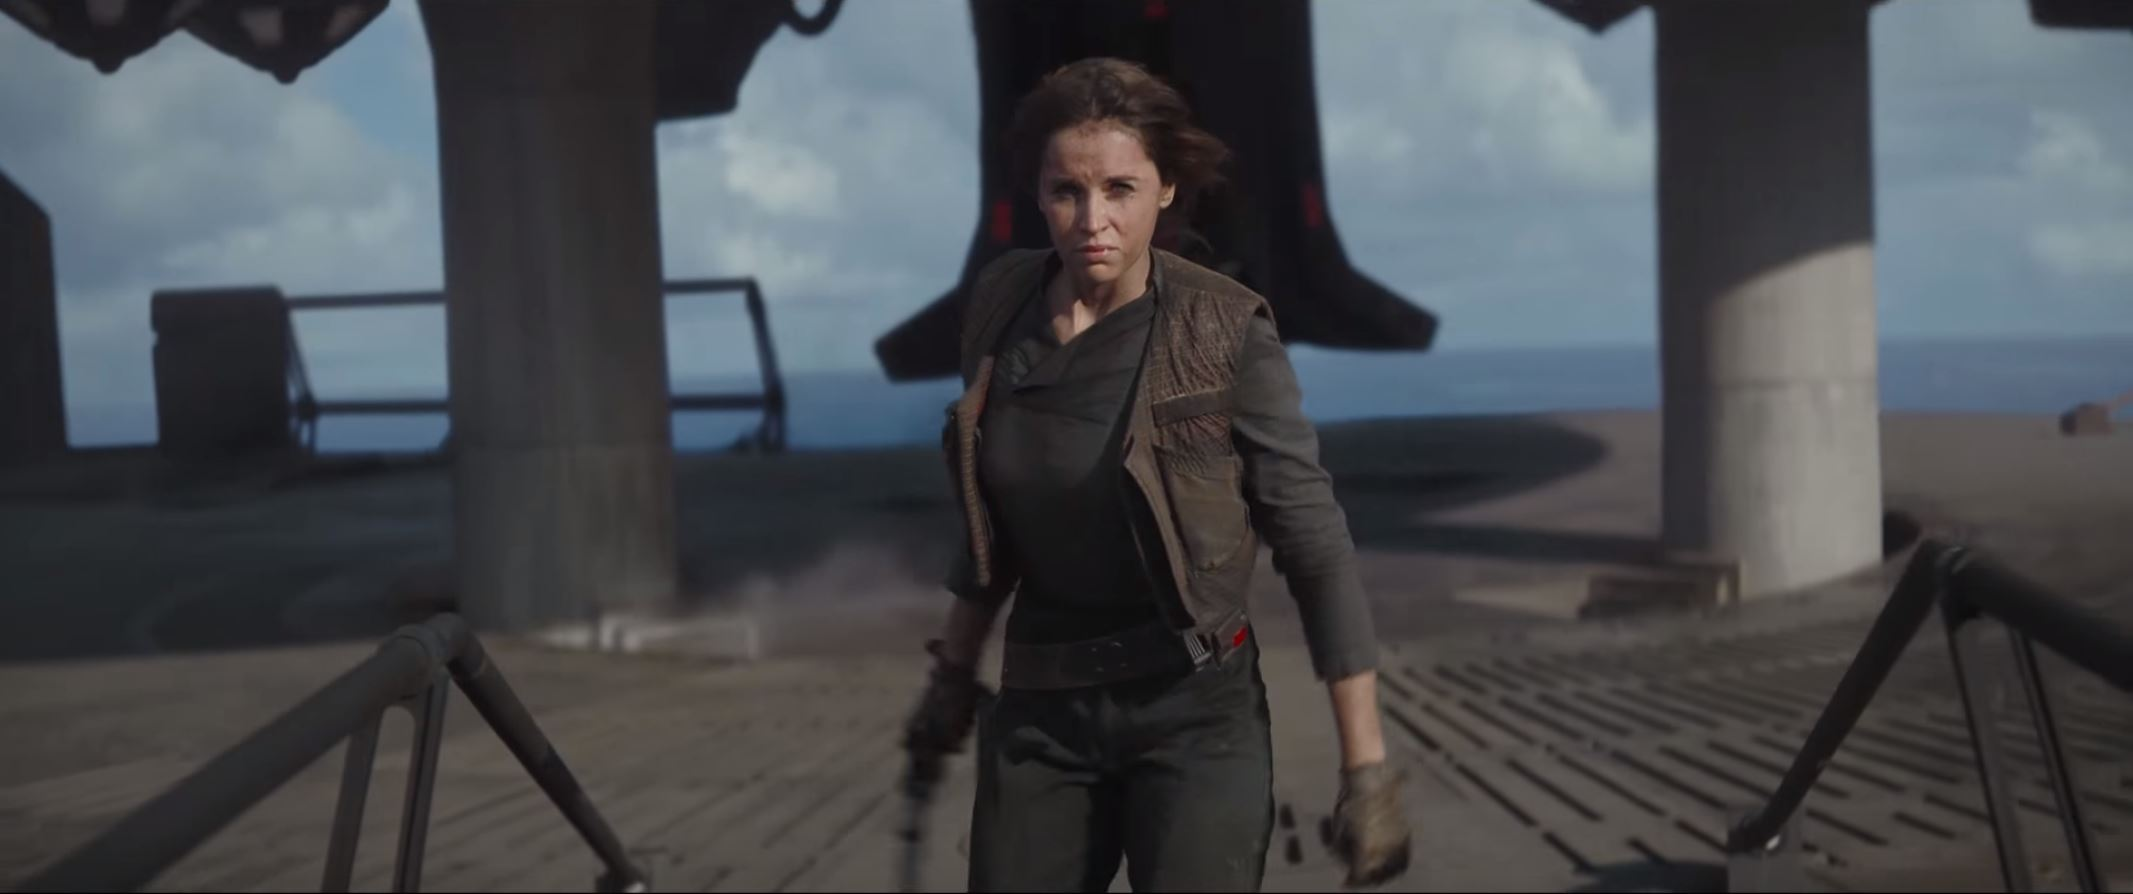 The New Rogue One Trailer Has Arrived!